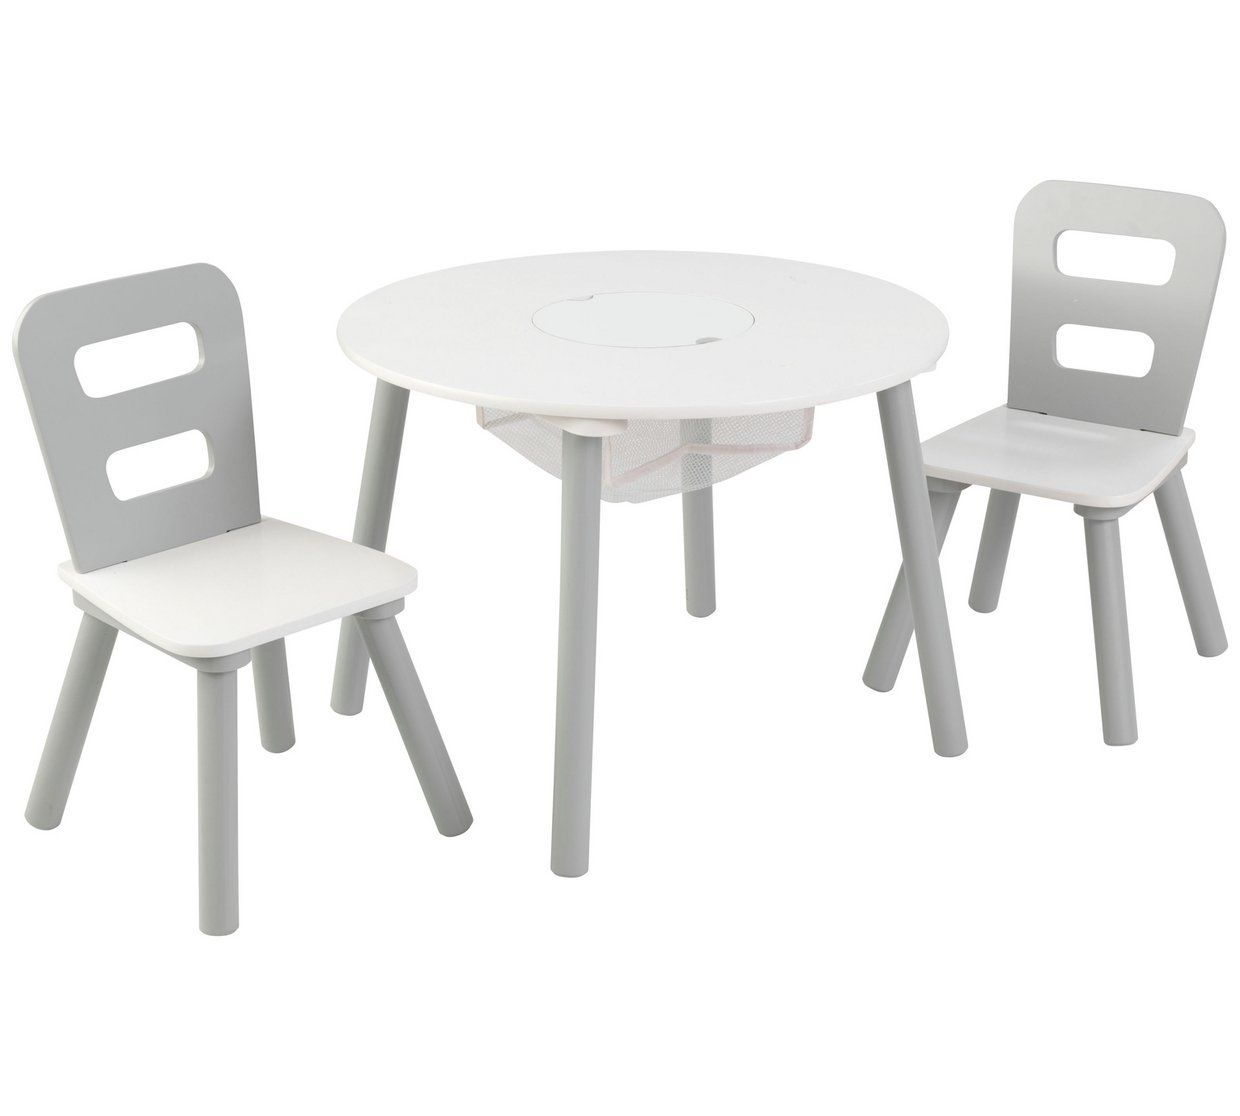 Buy Kidkraft Grey White Round Storage Table Chair Set Kids